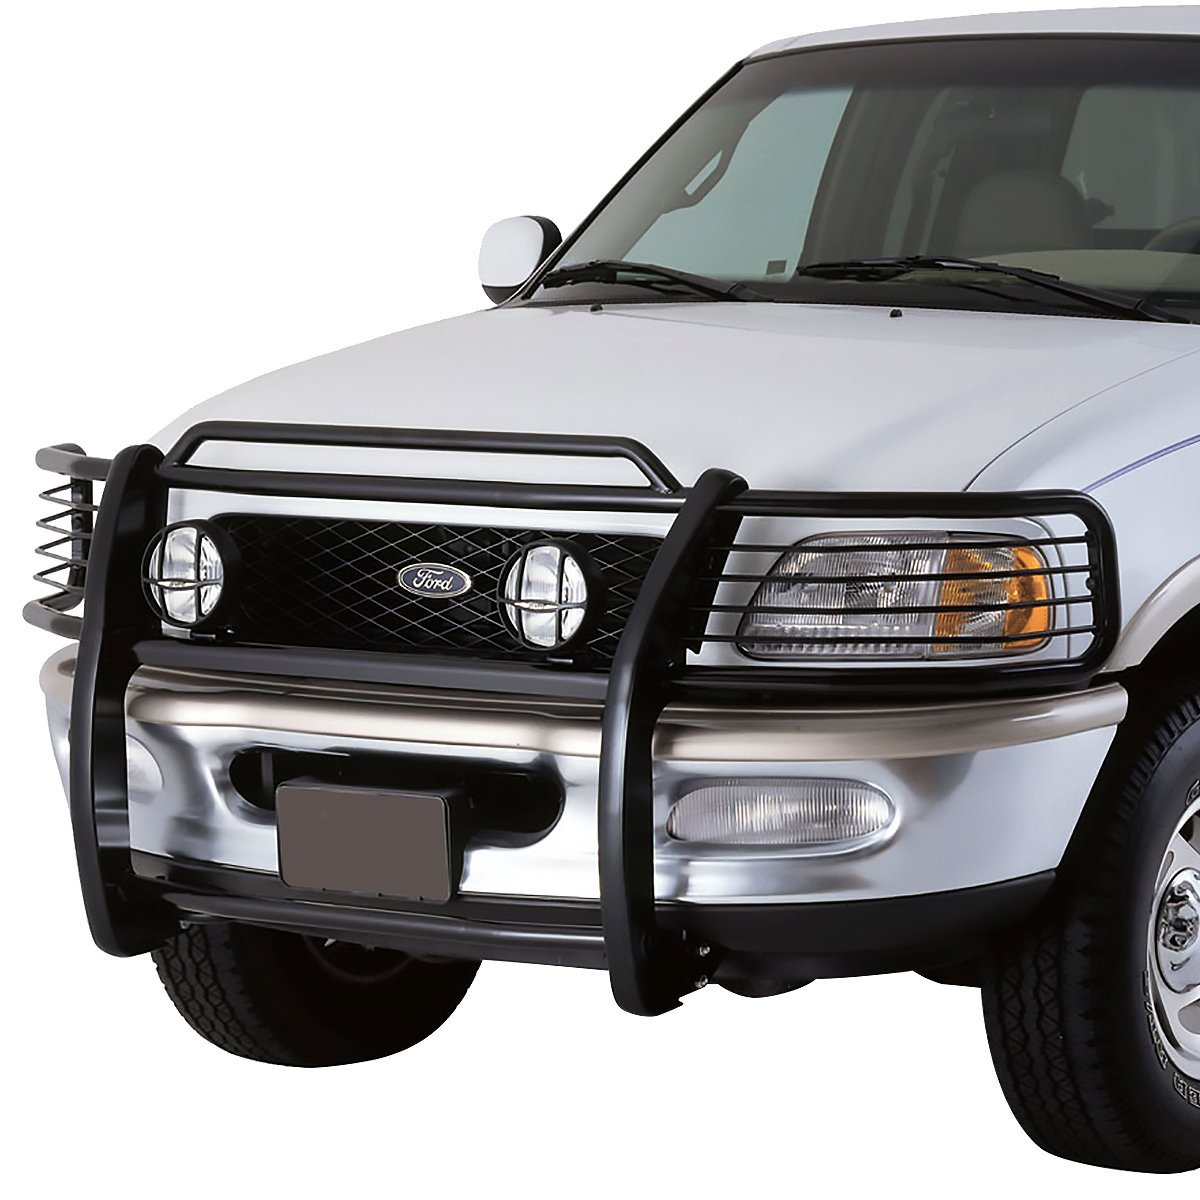 99 F150 Black: 99-02 Ford Expedition / 99-03 F150 / F250 2WD Front Bumper